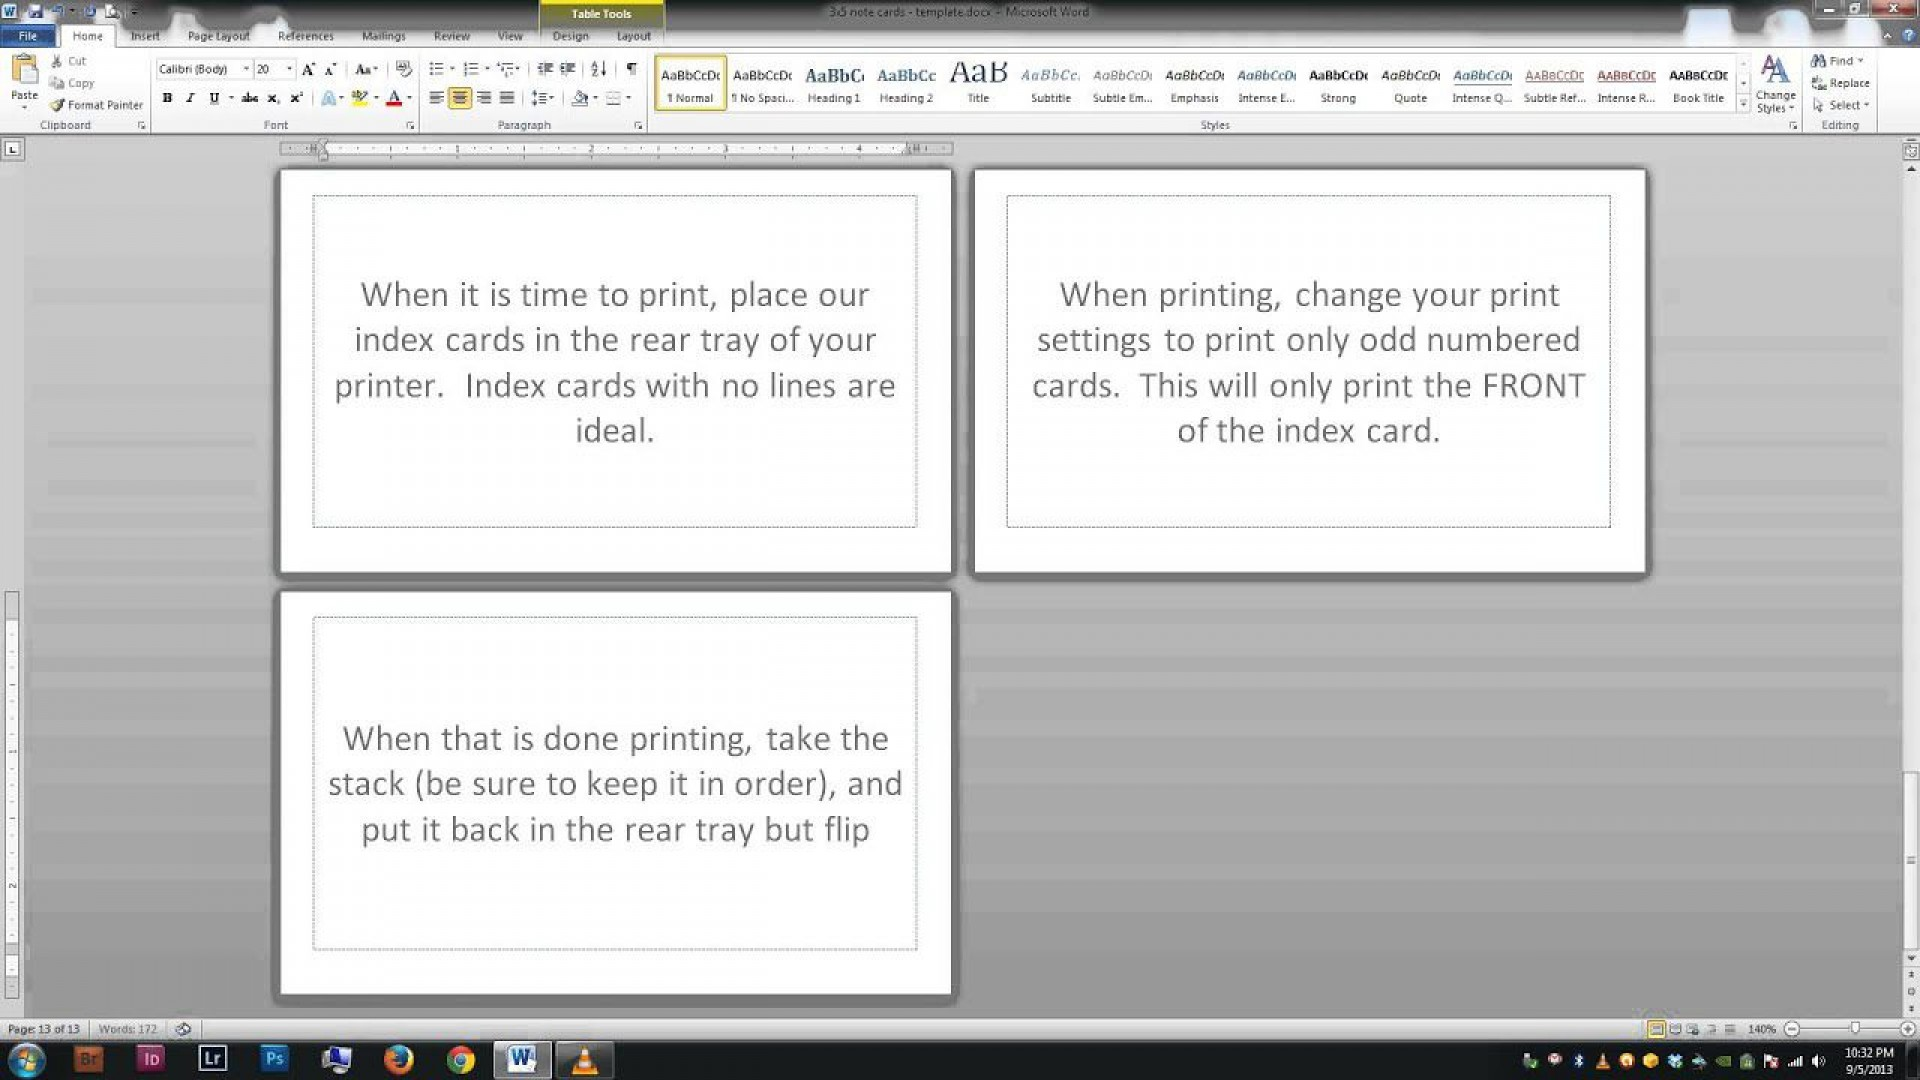 009 Awful Free Index Card Template Picture  Printable Editable1920